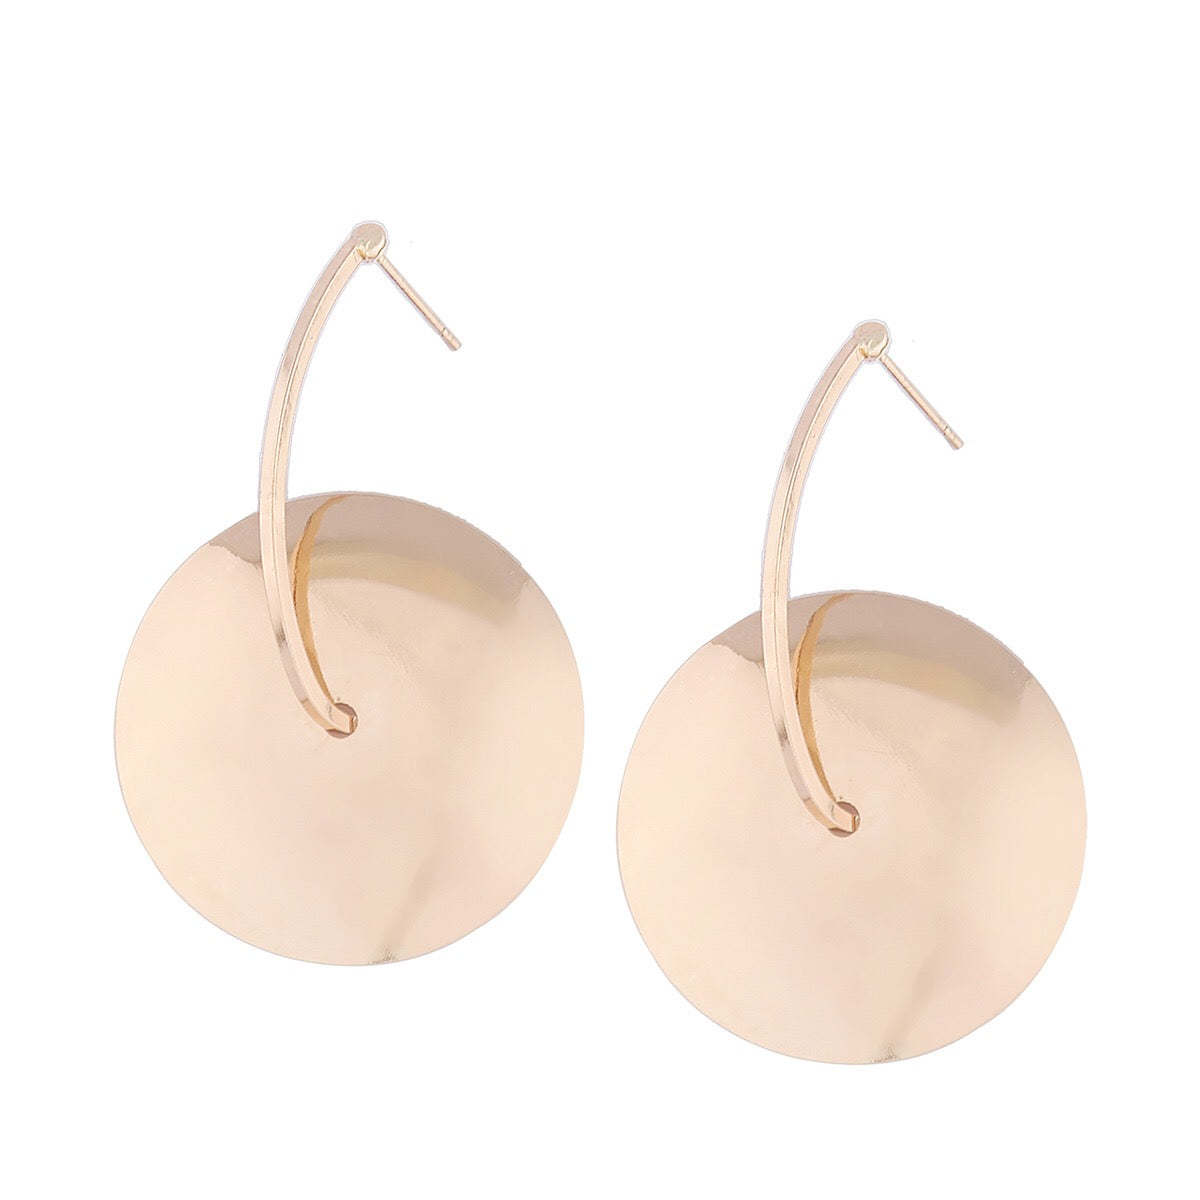 In A Perfect World Cymbals inspired drop earrings for a bolder look.